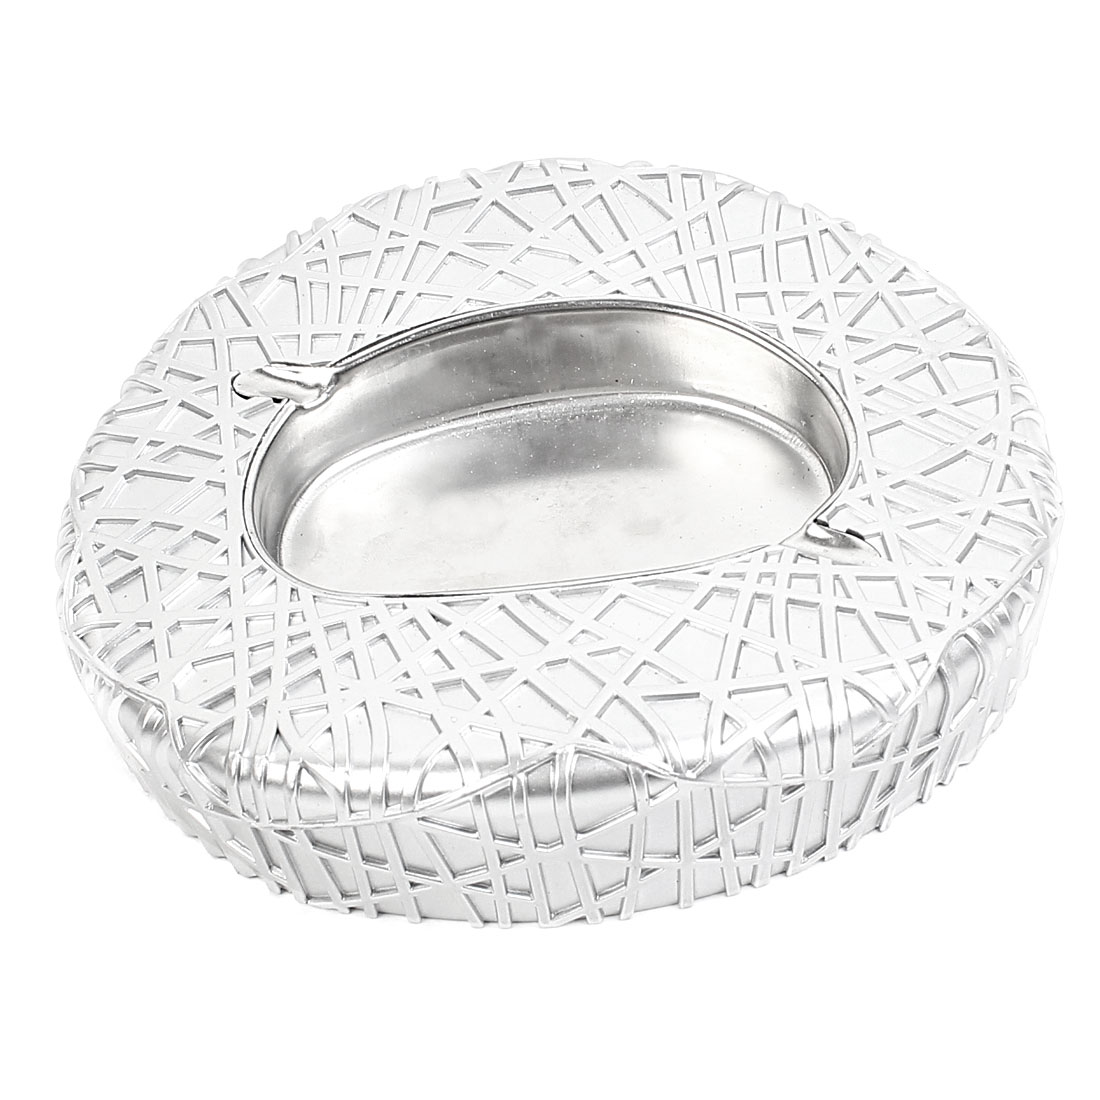 Office Home Table Decor Bird Nest Gymnasium Gym Shape Smoking Cigar Cigarette Tray Ashtray Silver Tone